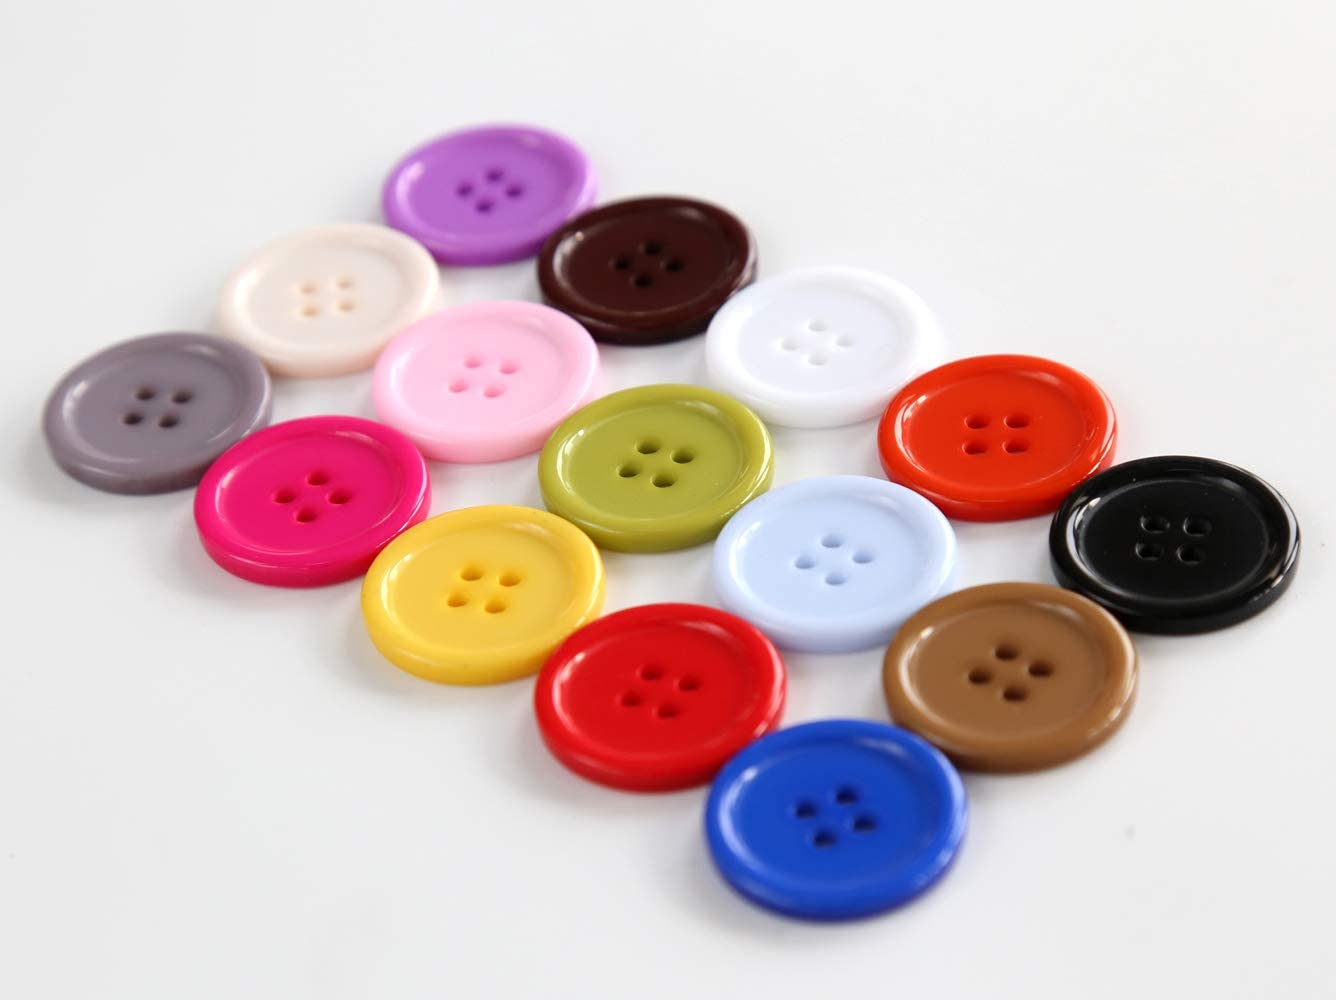 8 Large Cream Colored Buttons Sewing Buttons #LMSB-00210